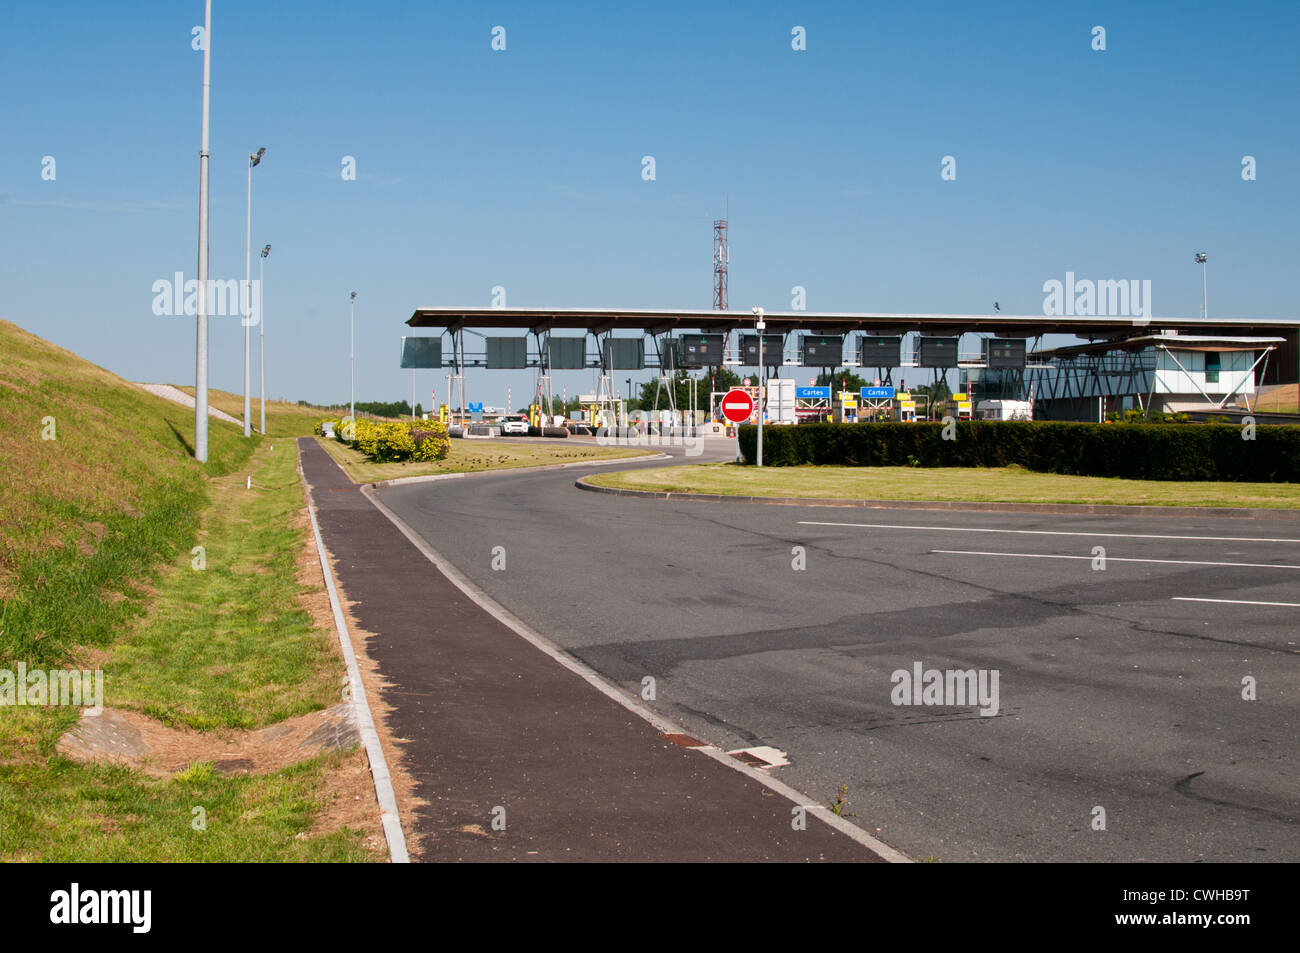 A29 motorway toll, France. - Stock Image